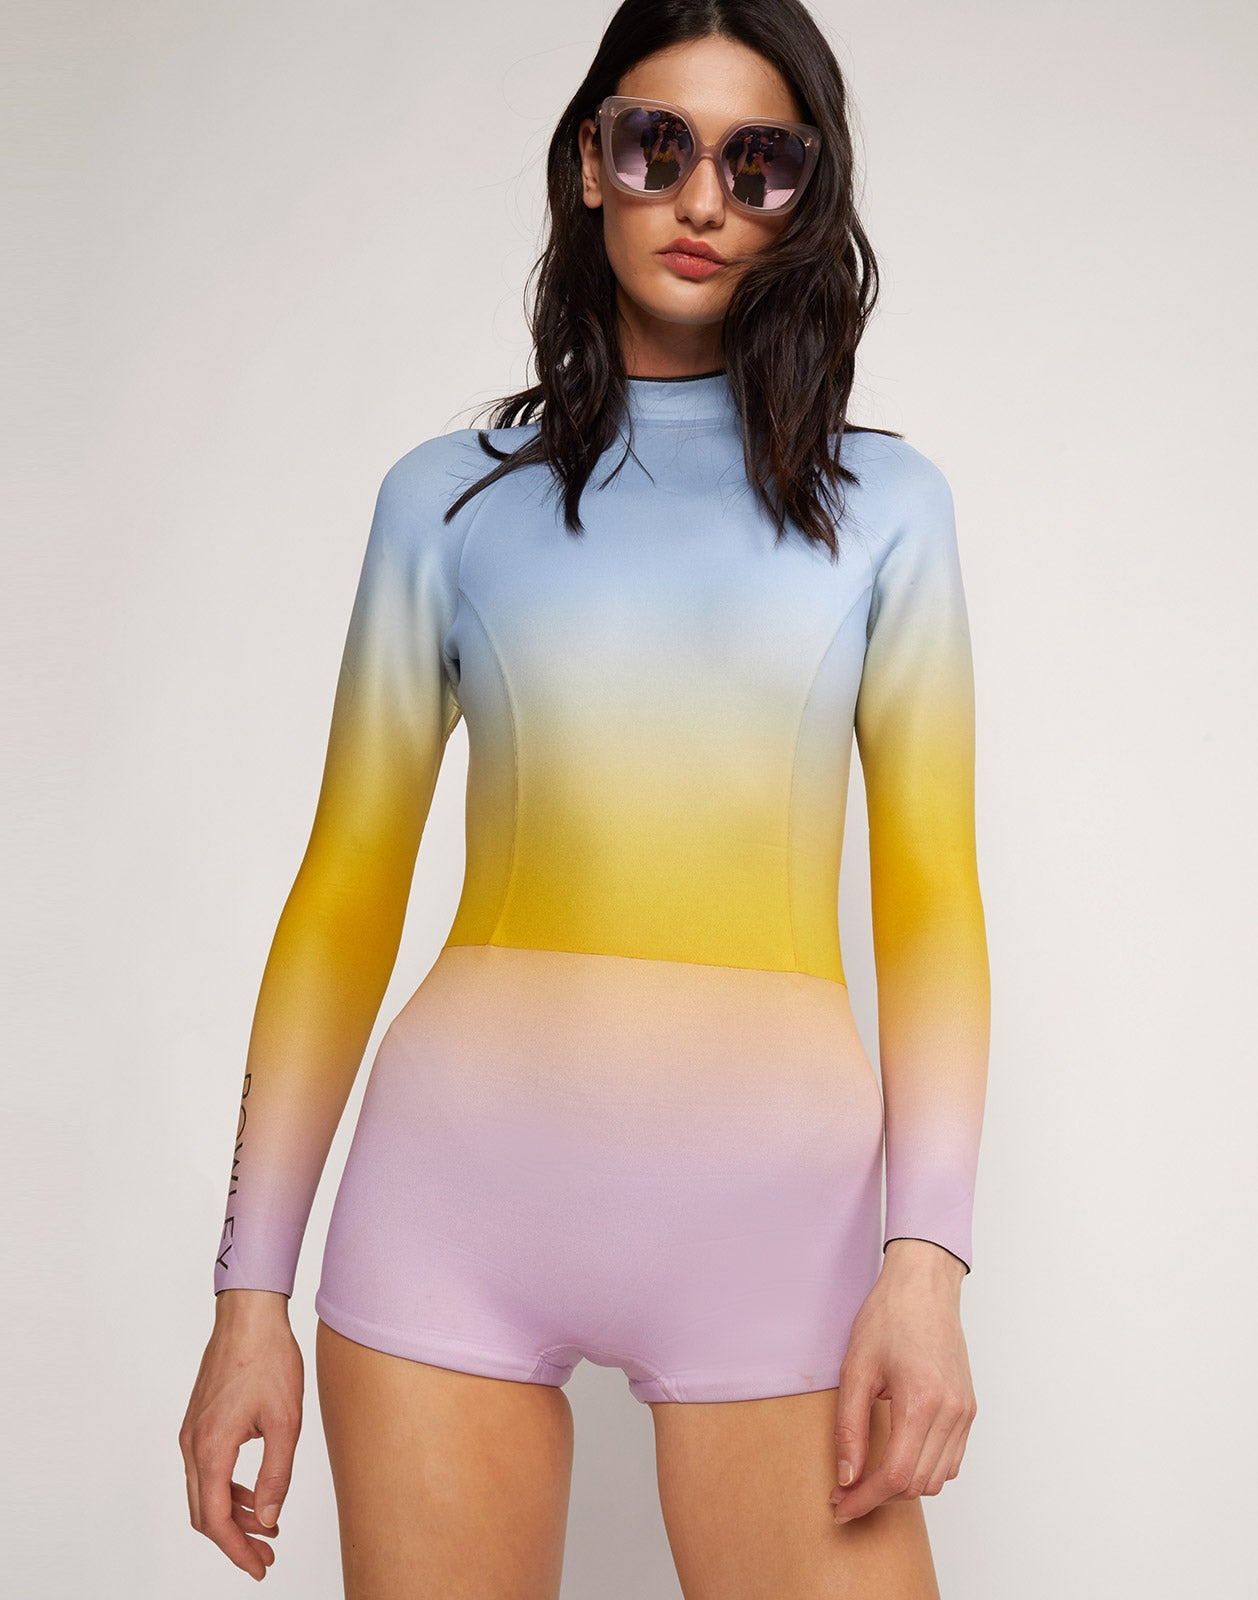 Alternate close up view model wearing Sea Ombre Wetsuit